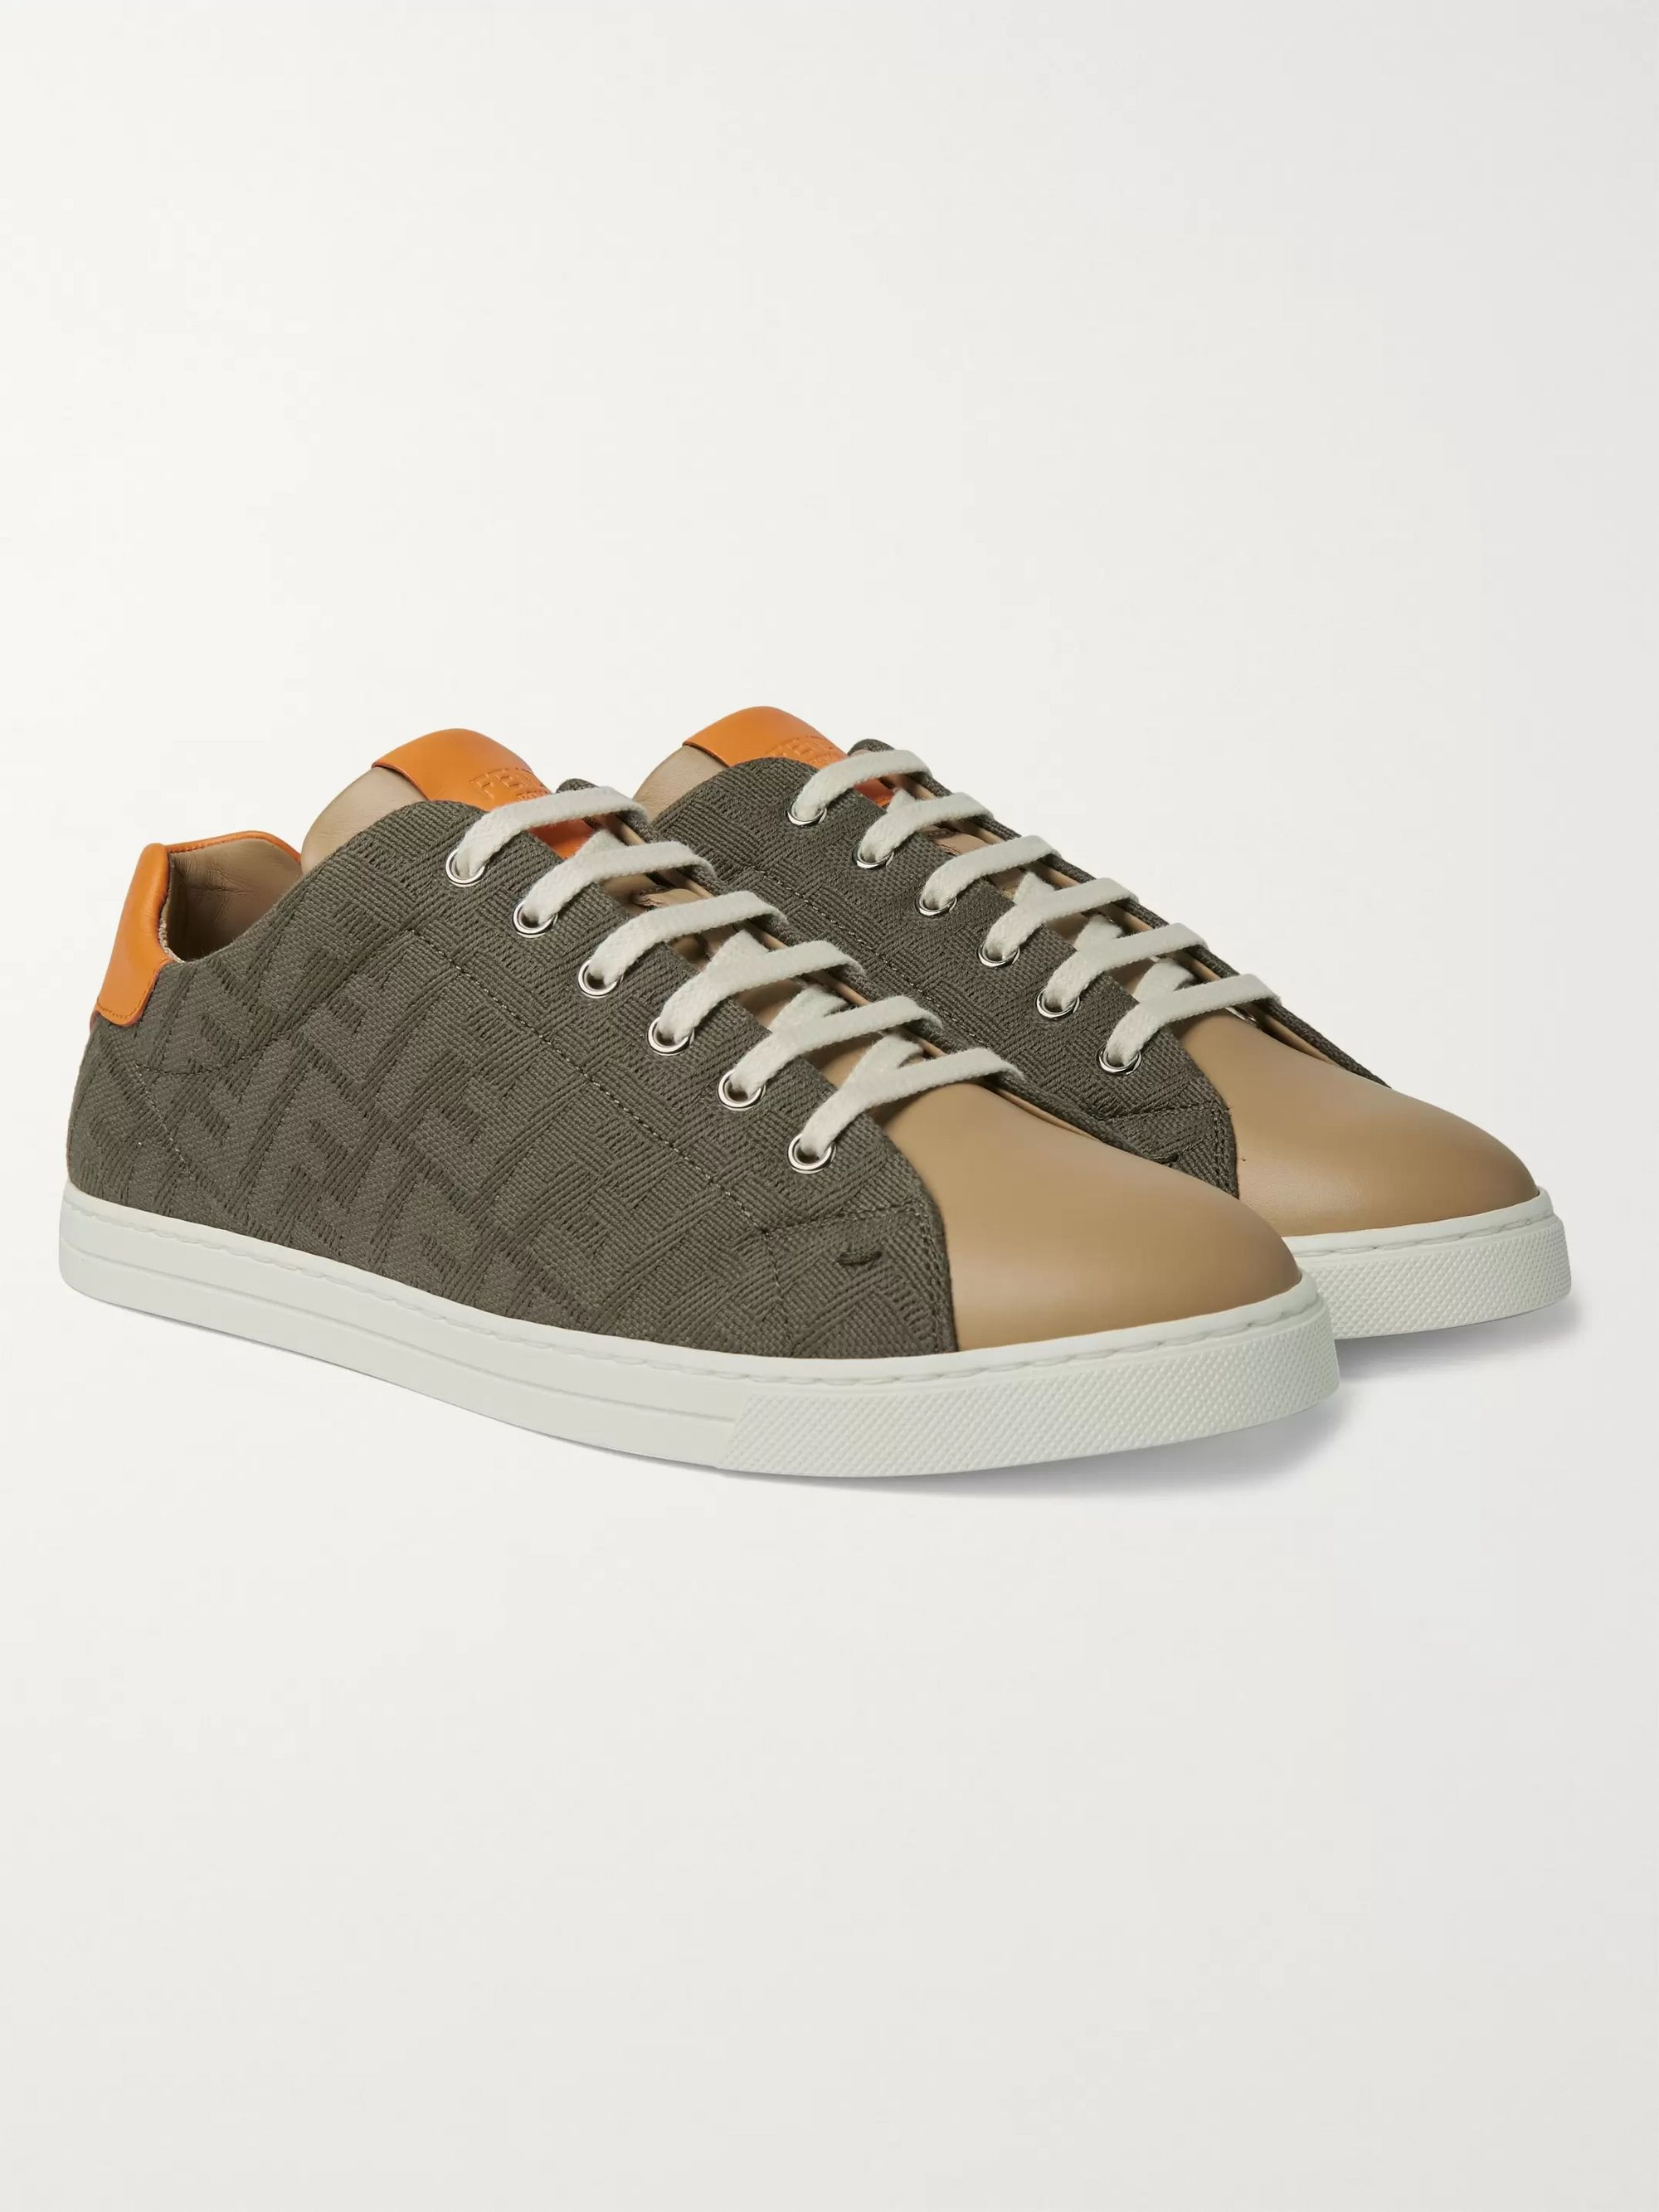 Fendi Logo-Jacquard Canvas and Leather Sneakers